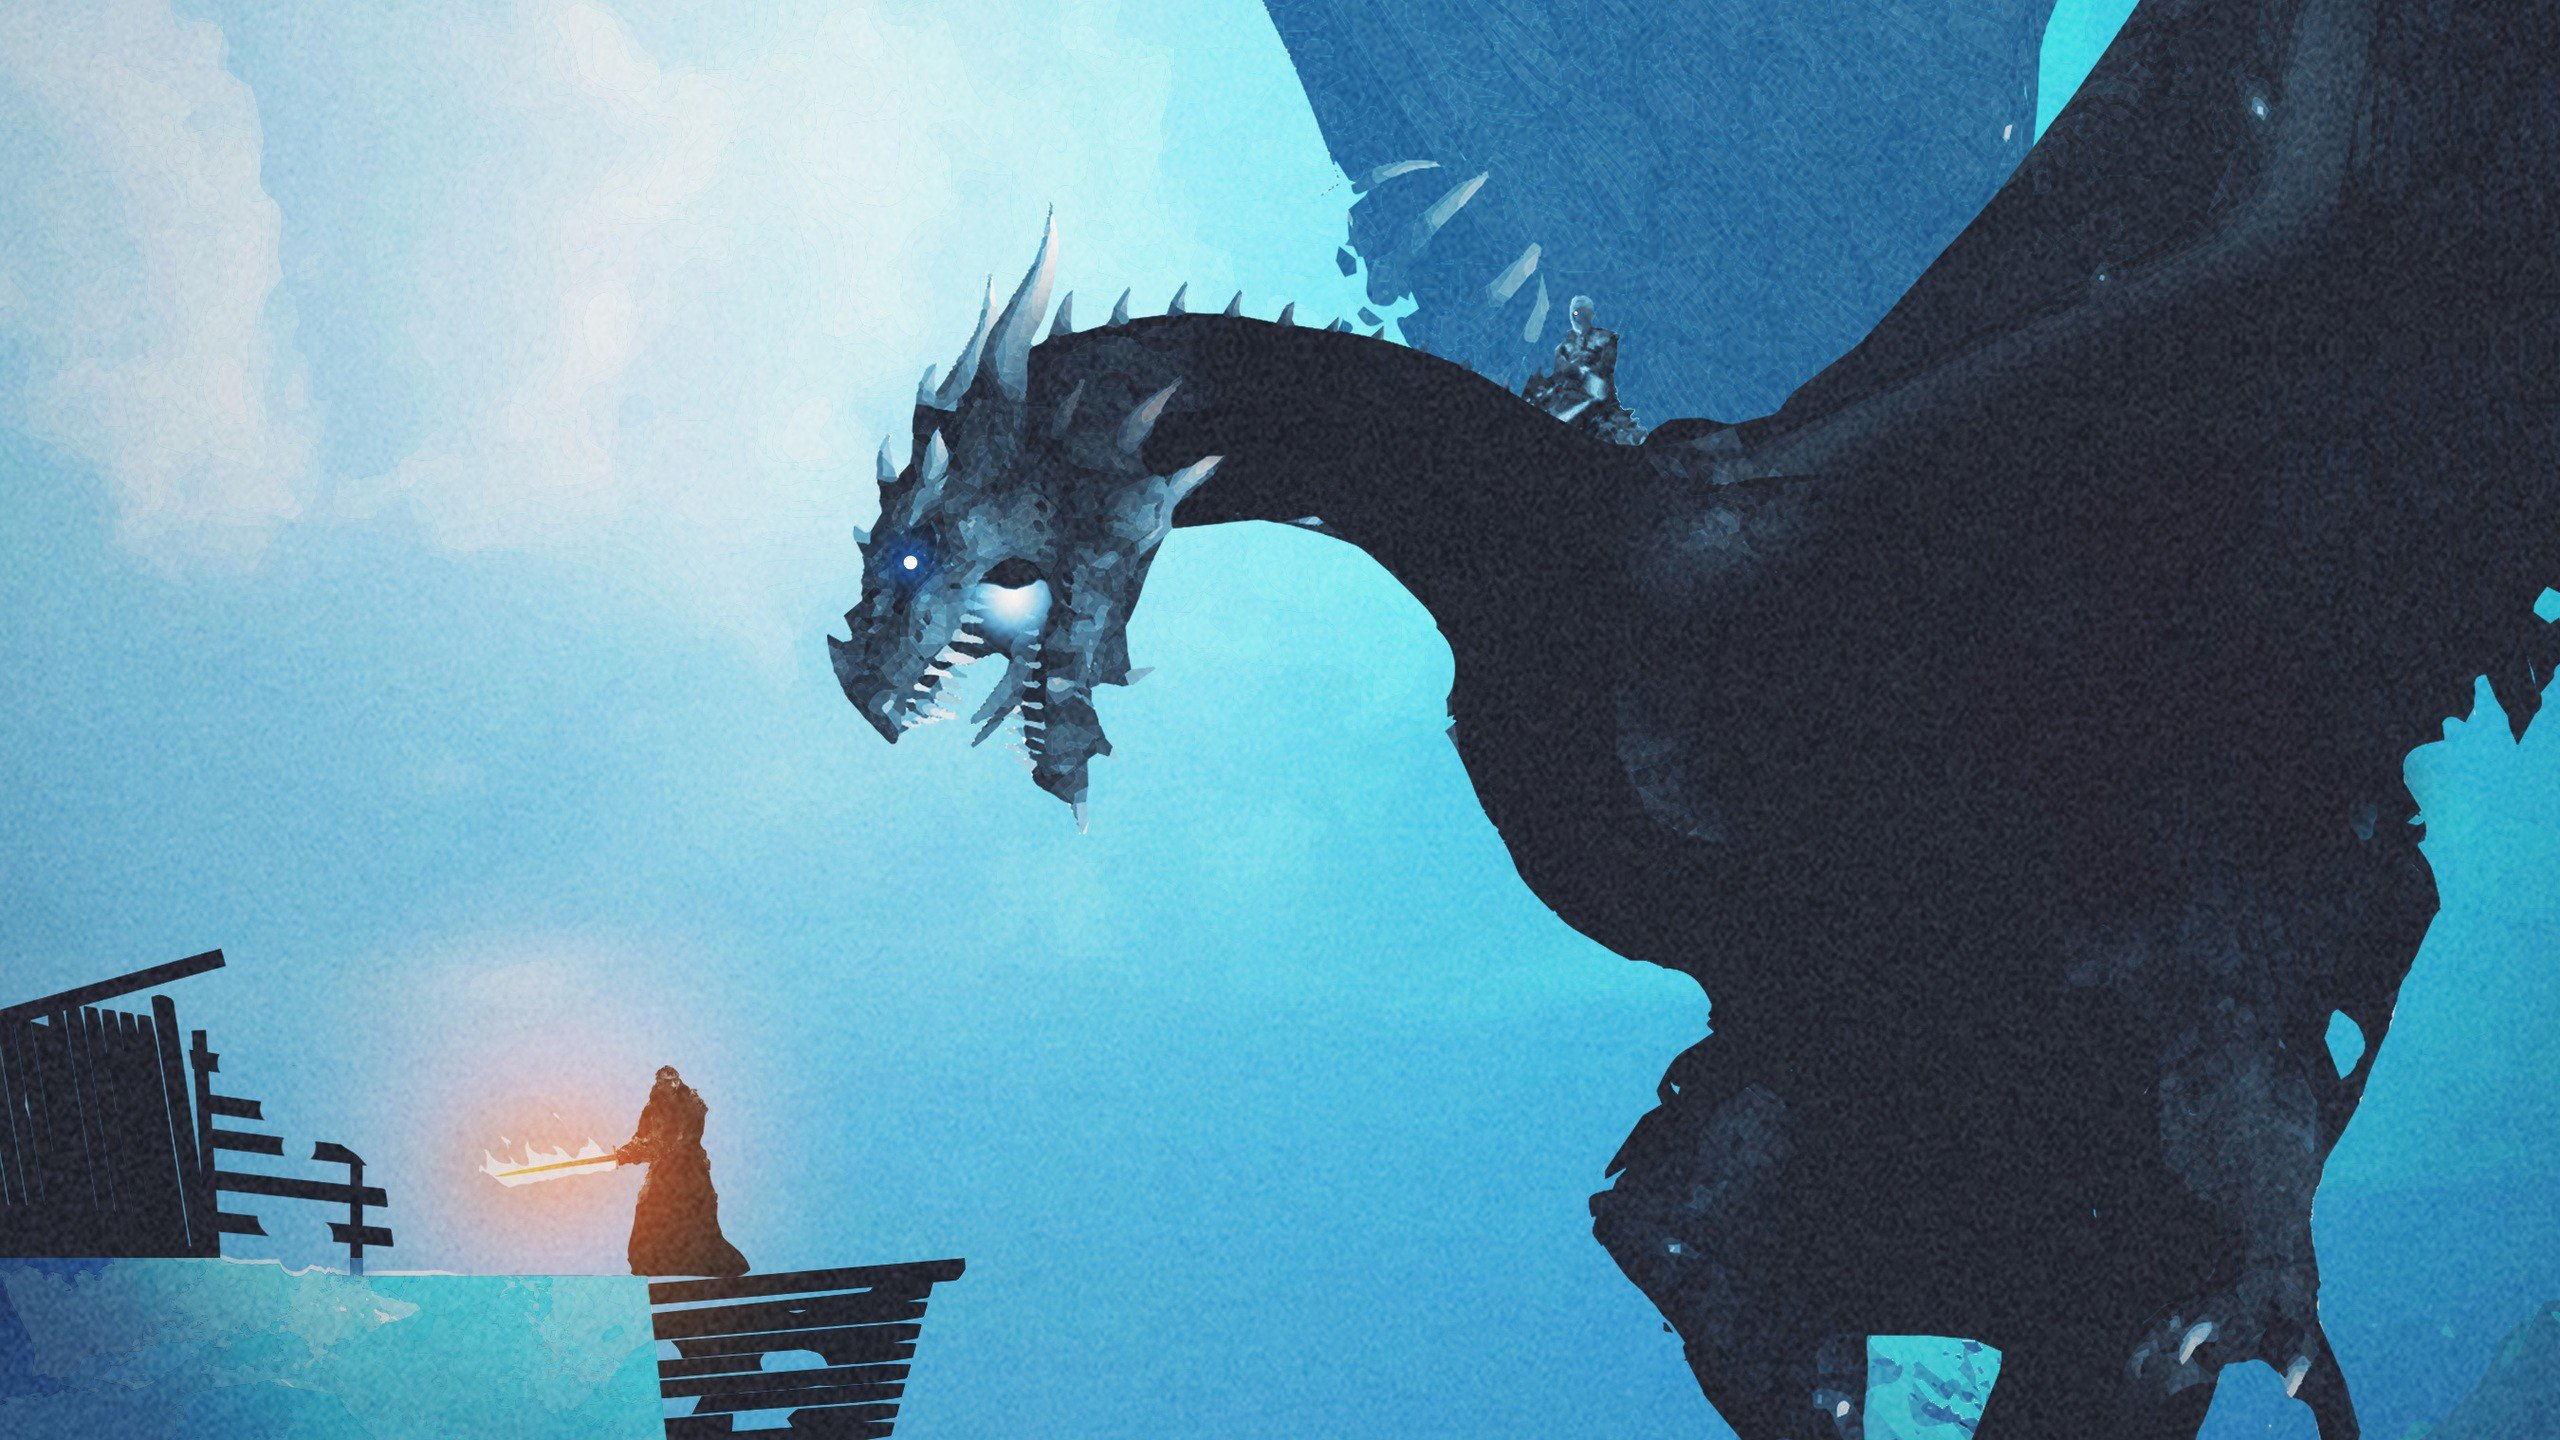 Game Of Thrones Wallpaper on newwallpaperdownloadcom 2560x1440